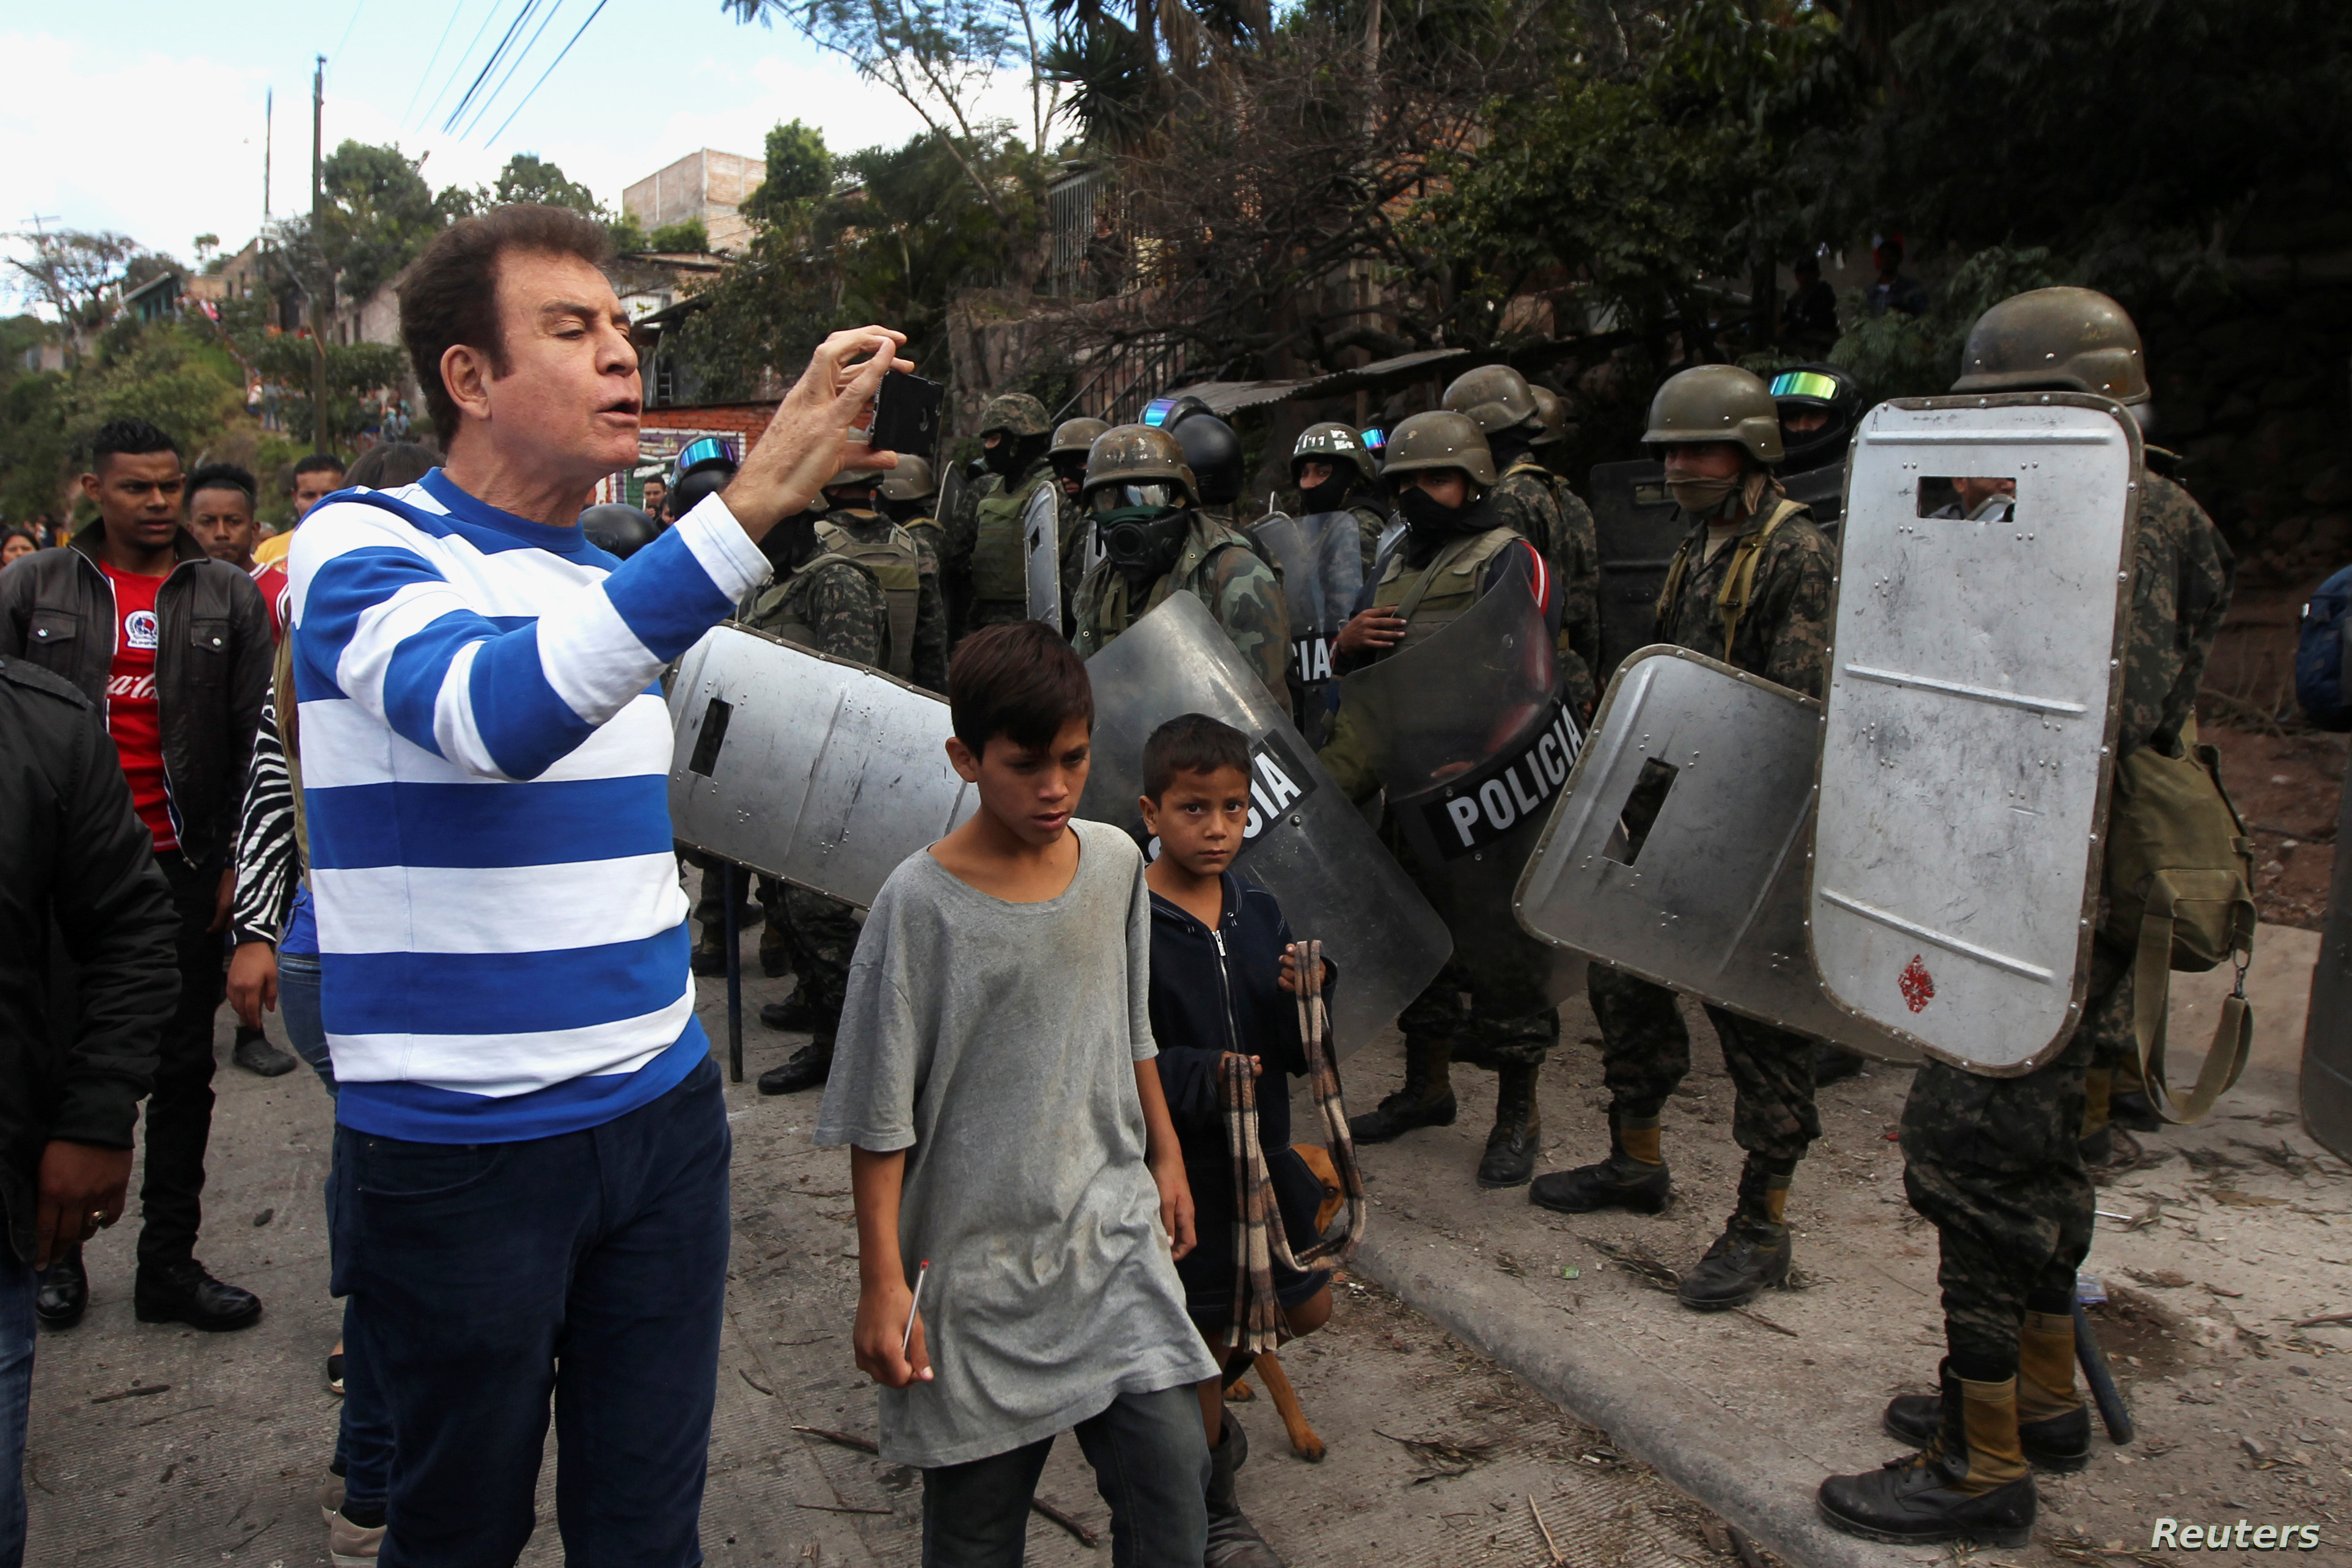 Opposition candidate Salvador Nasralla takes video of soldiers during a protest against the re-election of Honduran President Juan Orlando Hernandez in Tegucigalpa, Honduras, Jan. 20, 2018.